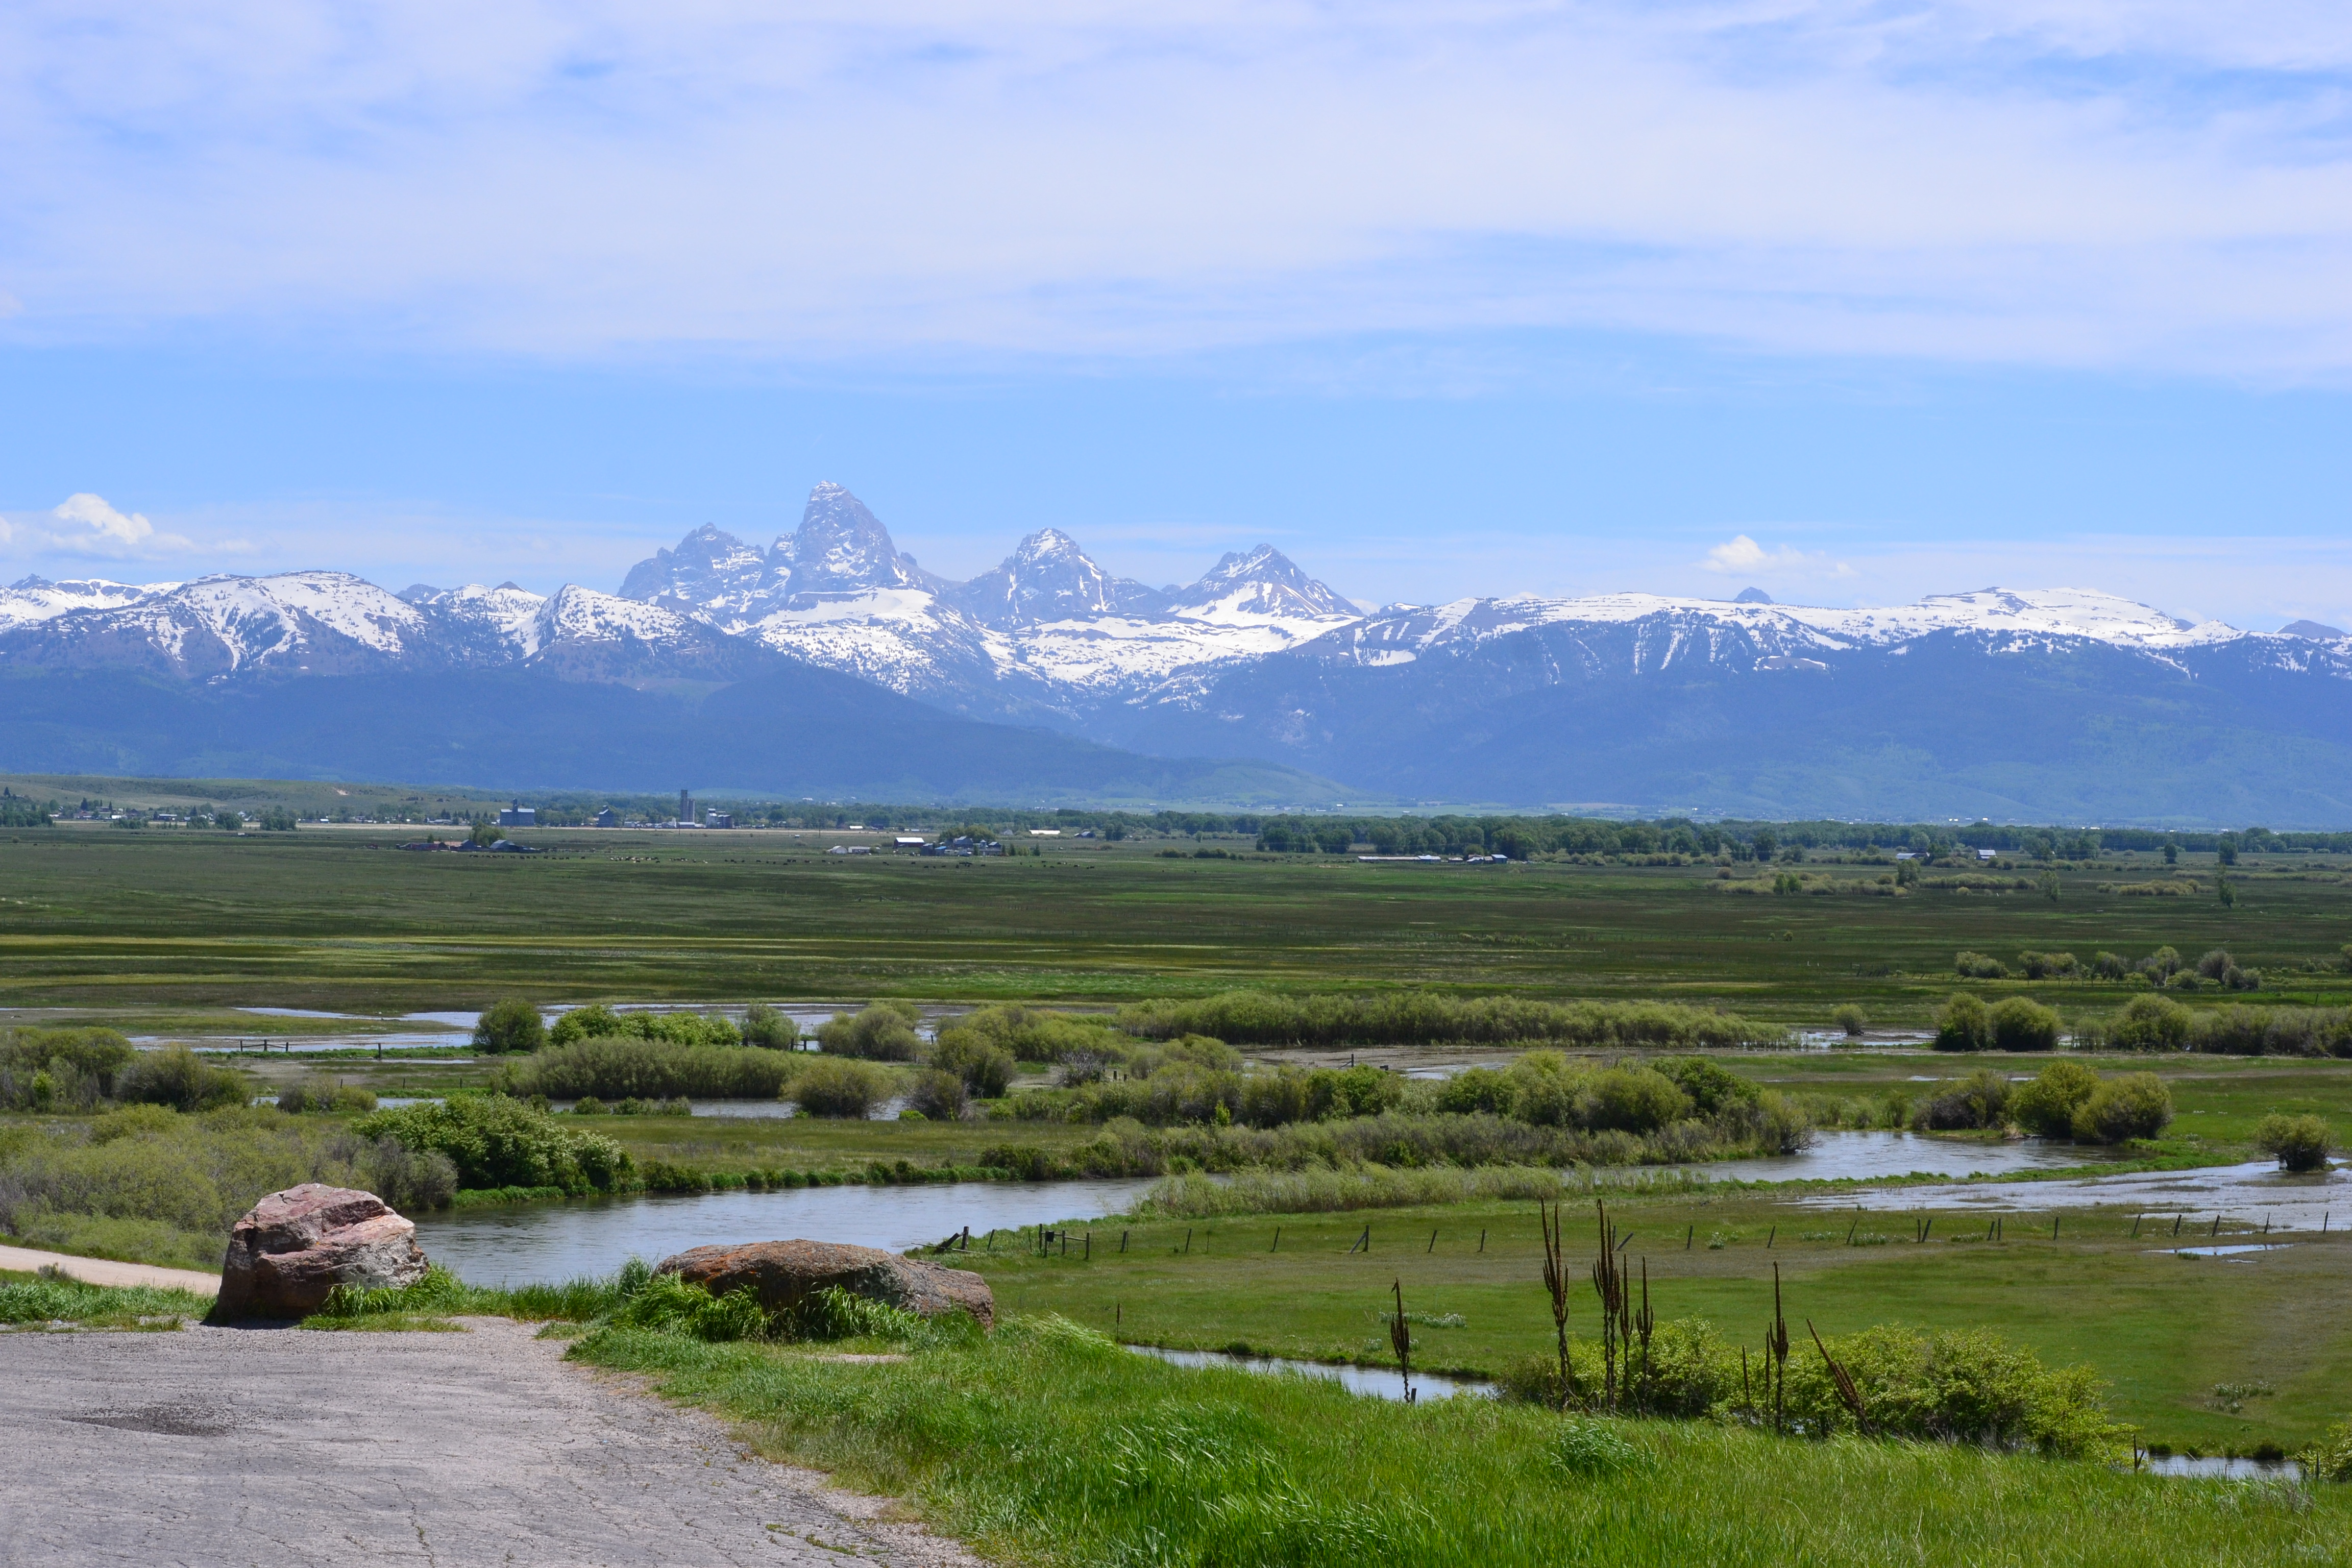 The Grand Tetons from the Idaho side